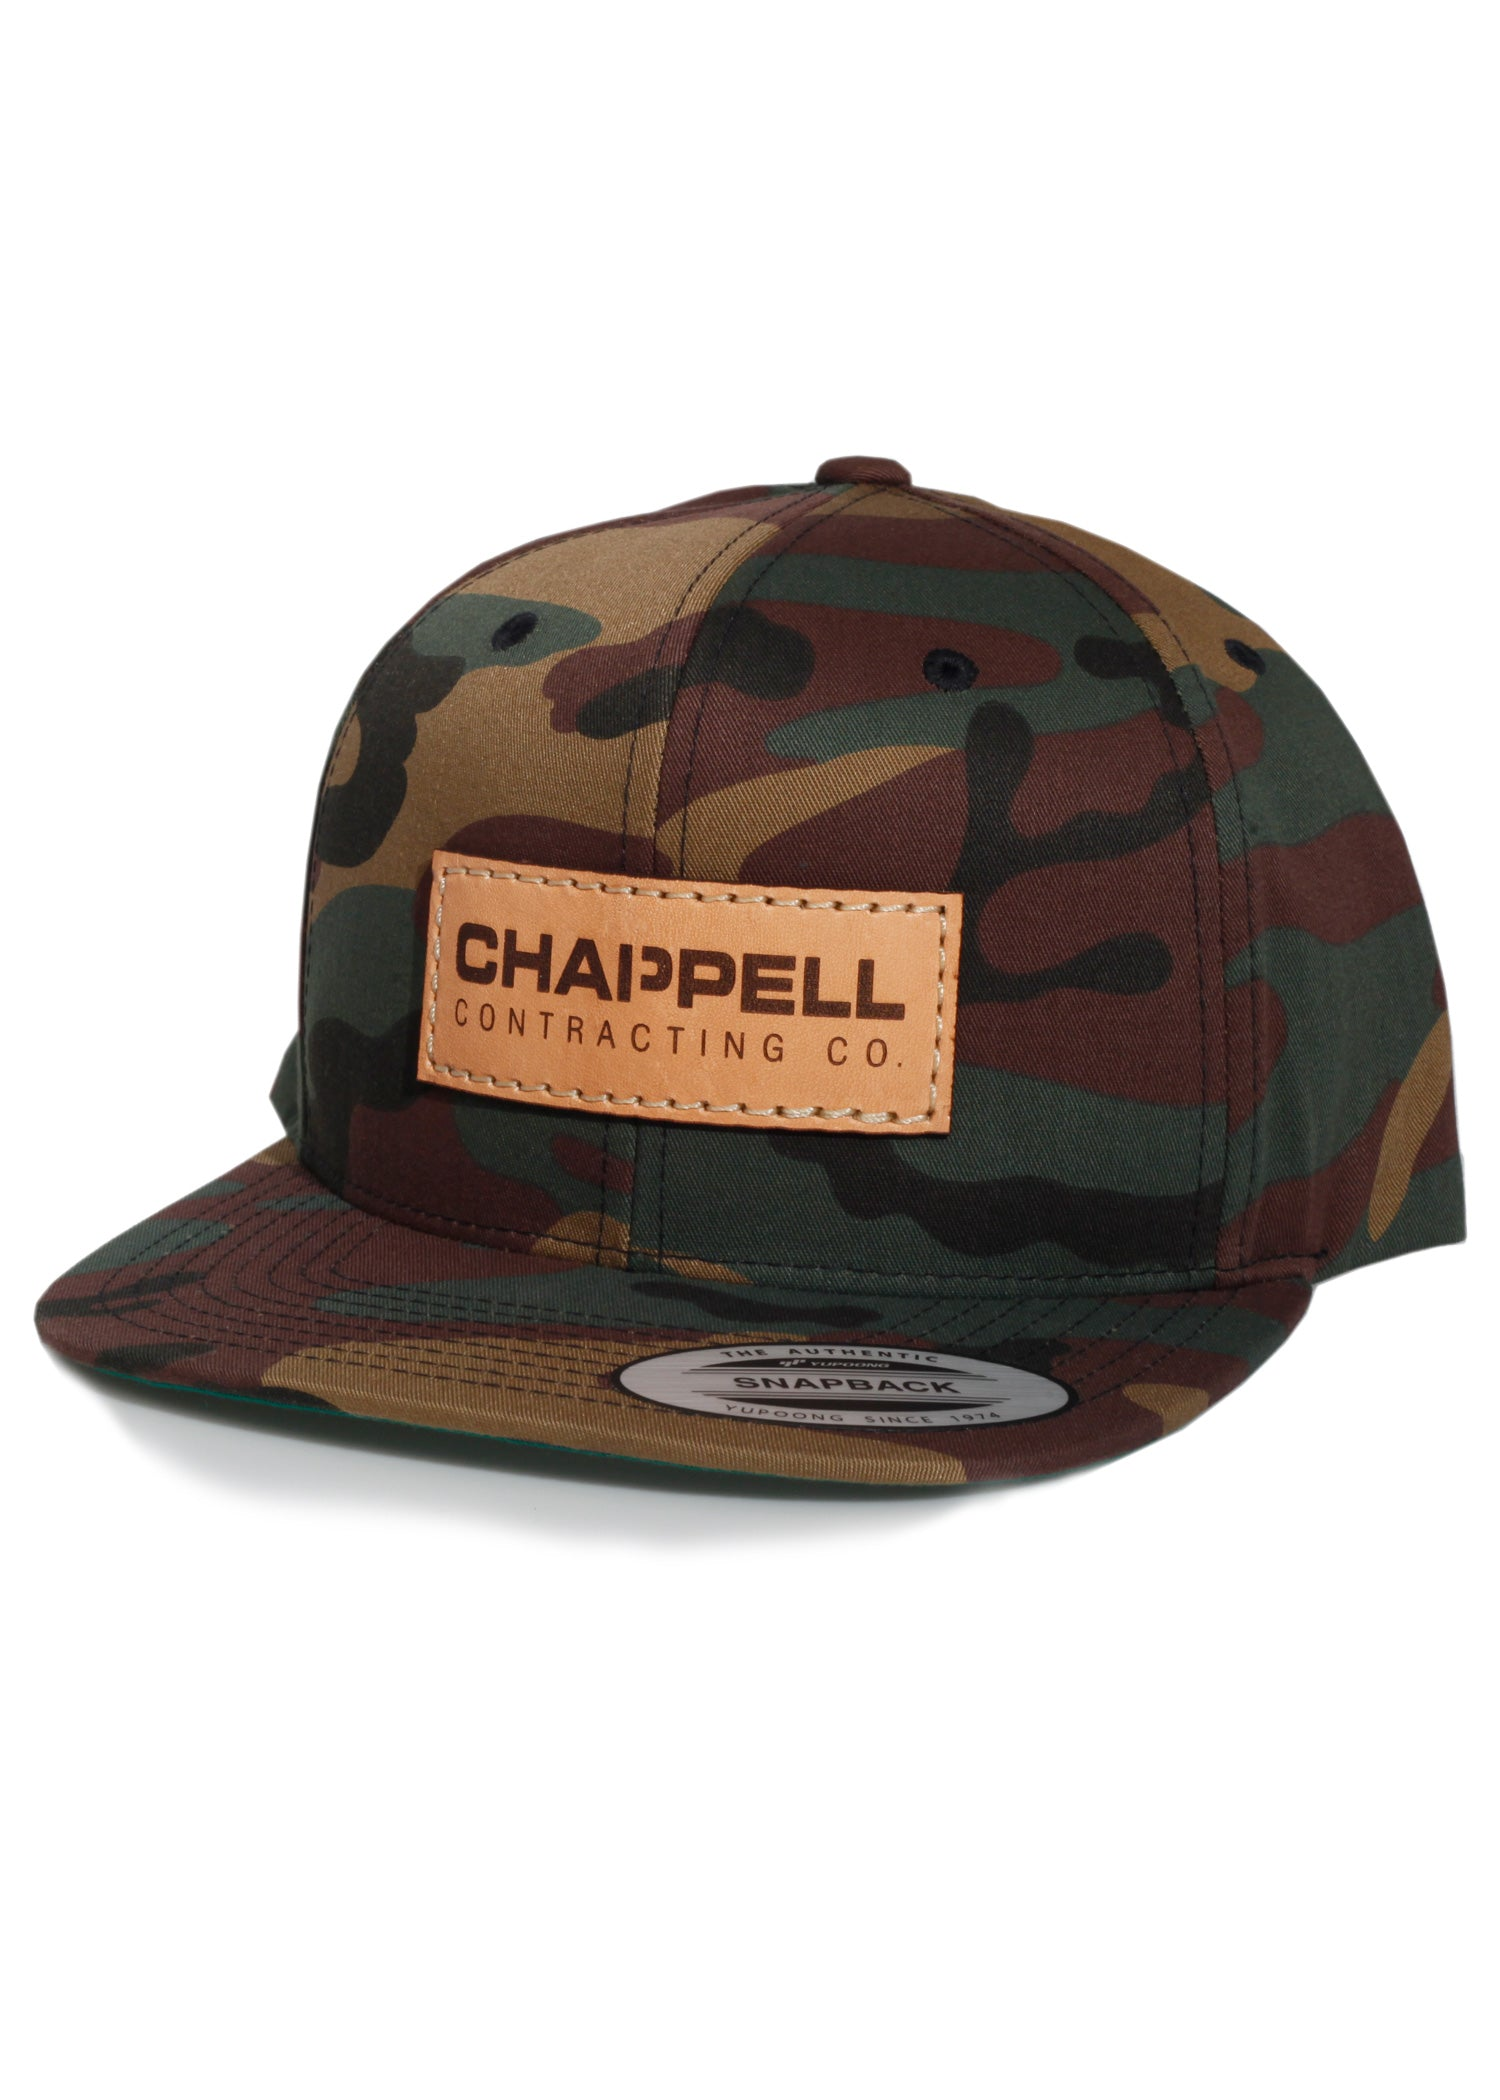 Chappell Contracting Co. - Yupoong 6089 Army Camo